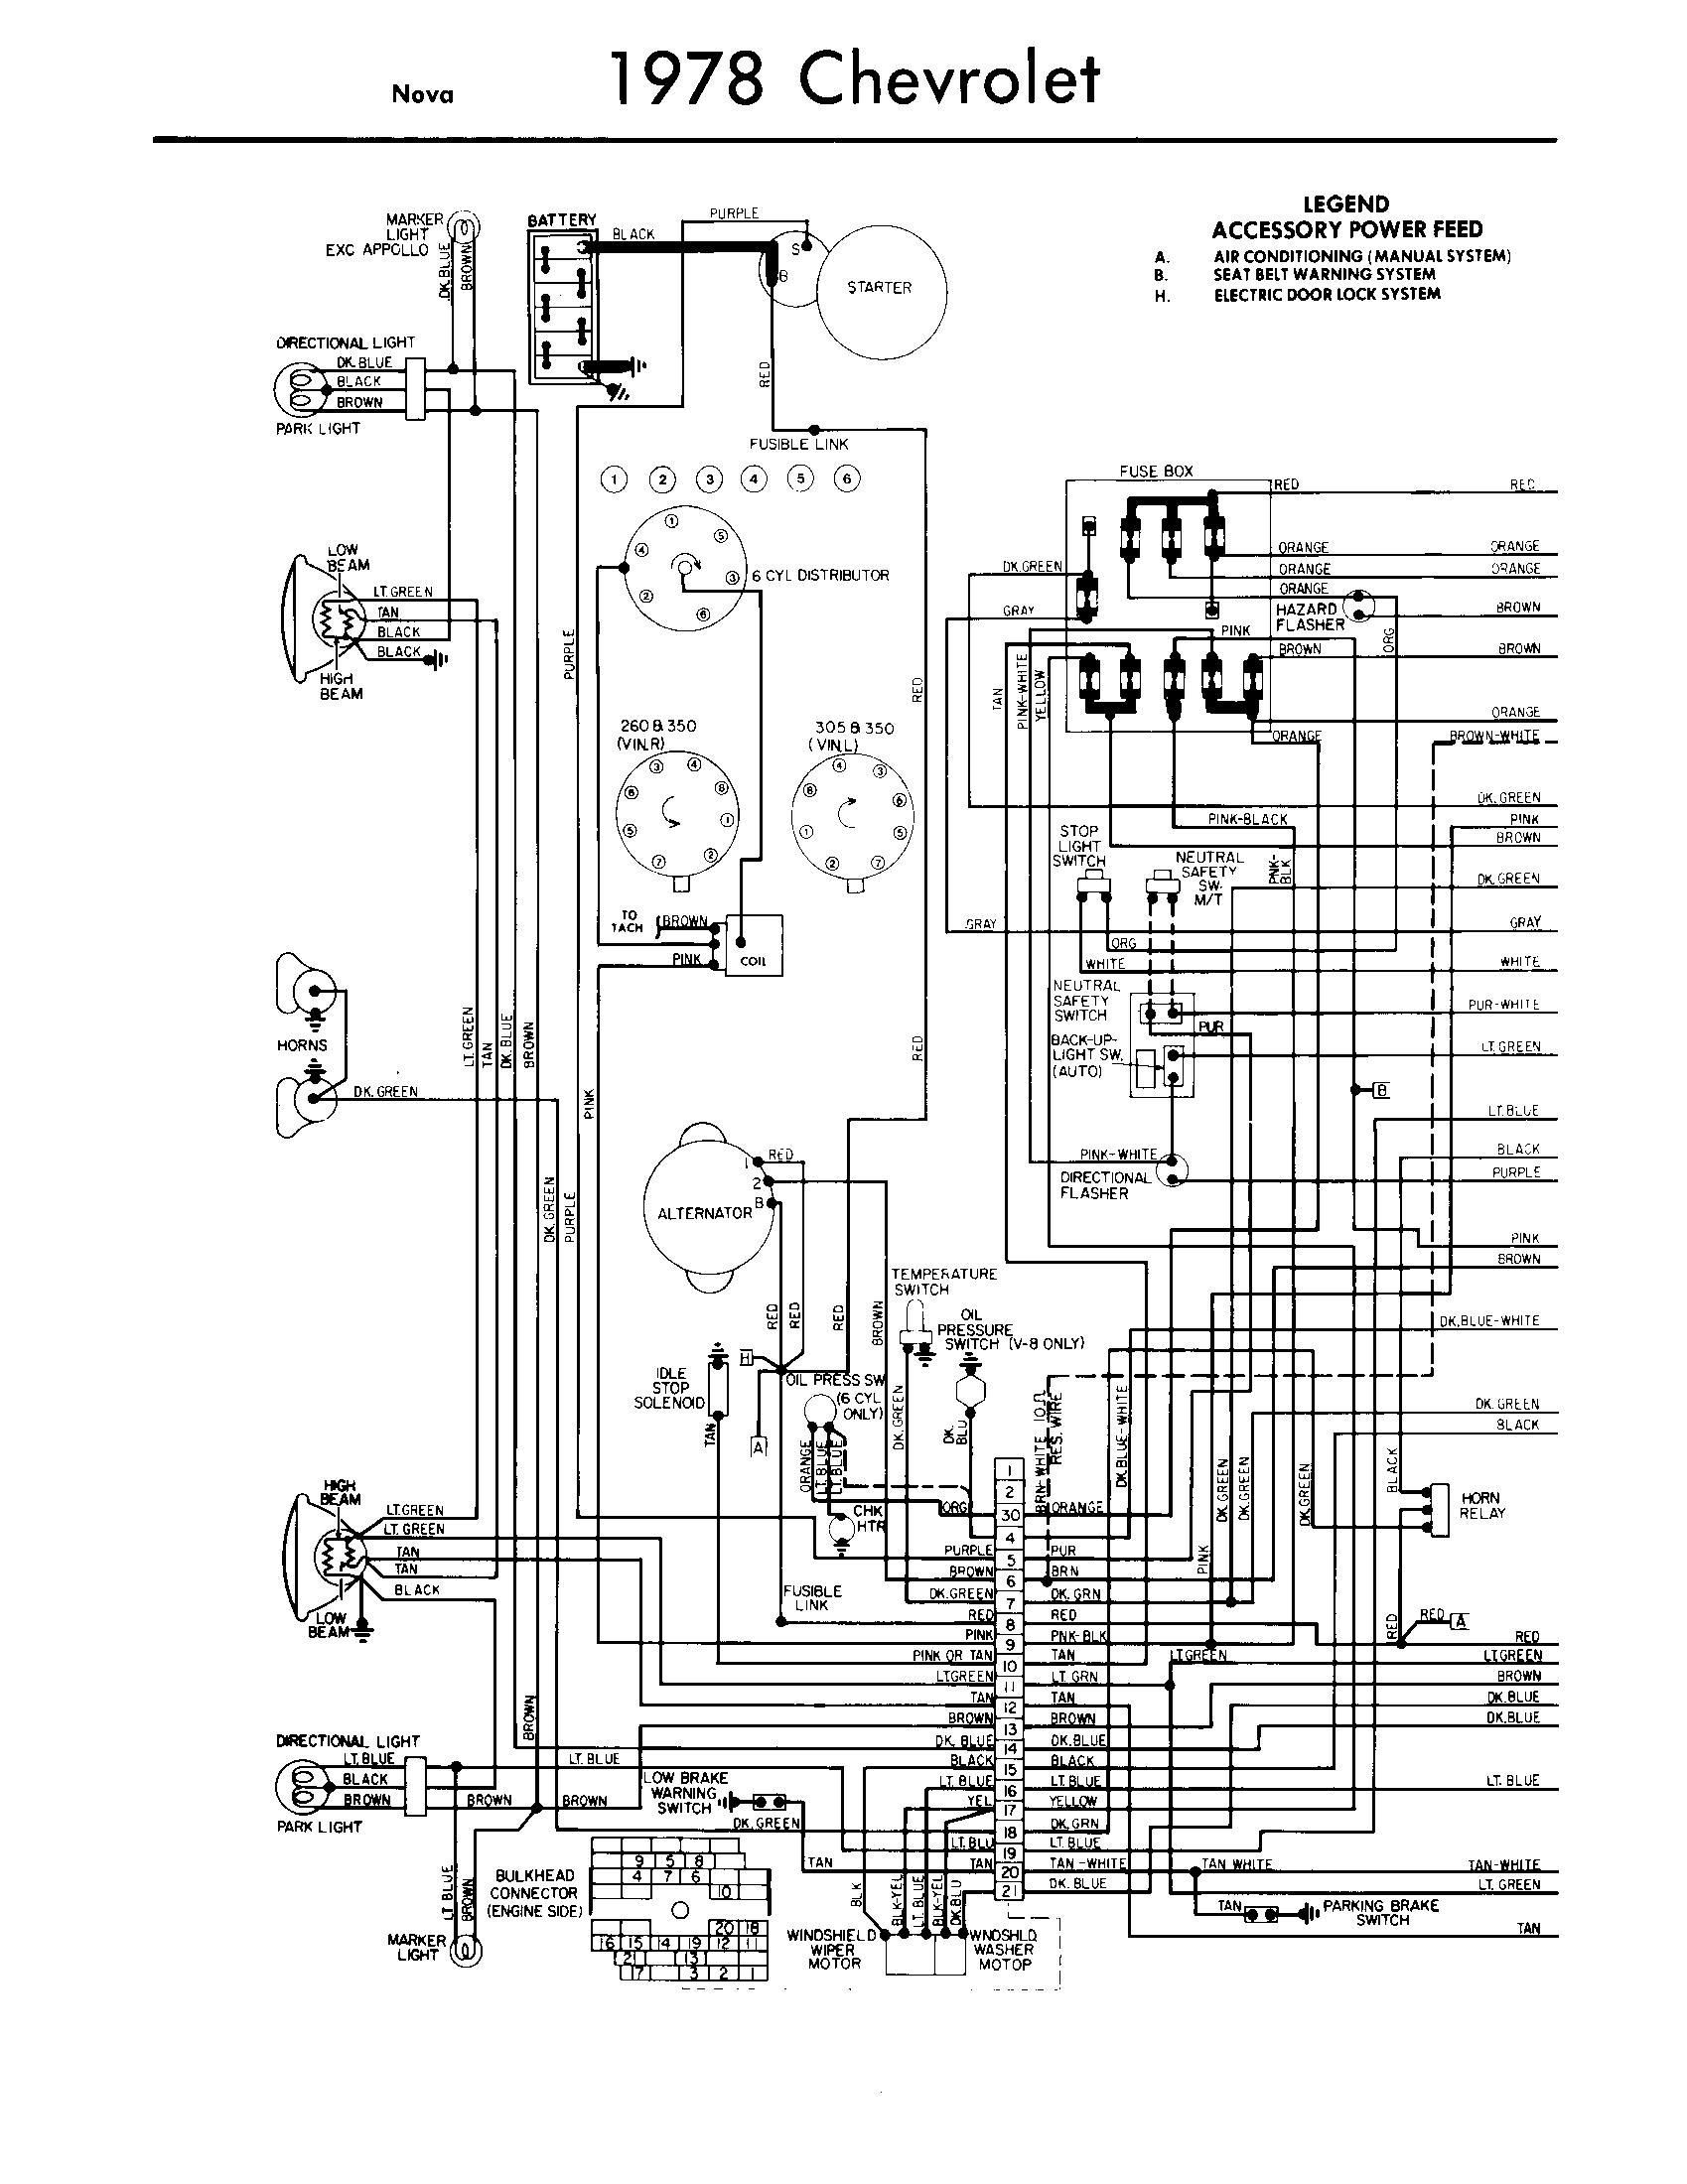 1965 Chevy Truck Wiring Diagram from i.pinimg.com